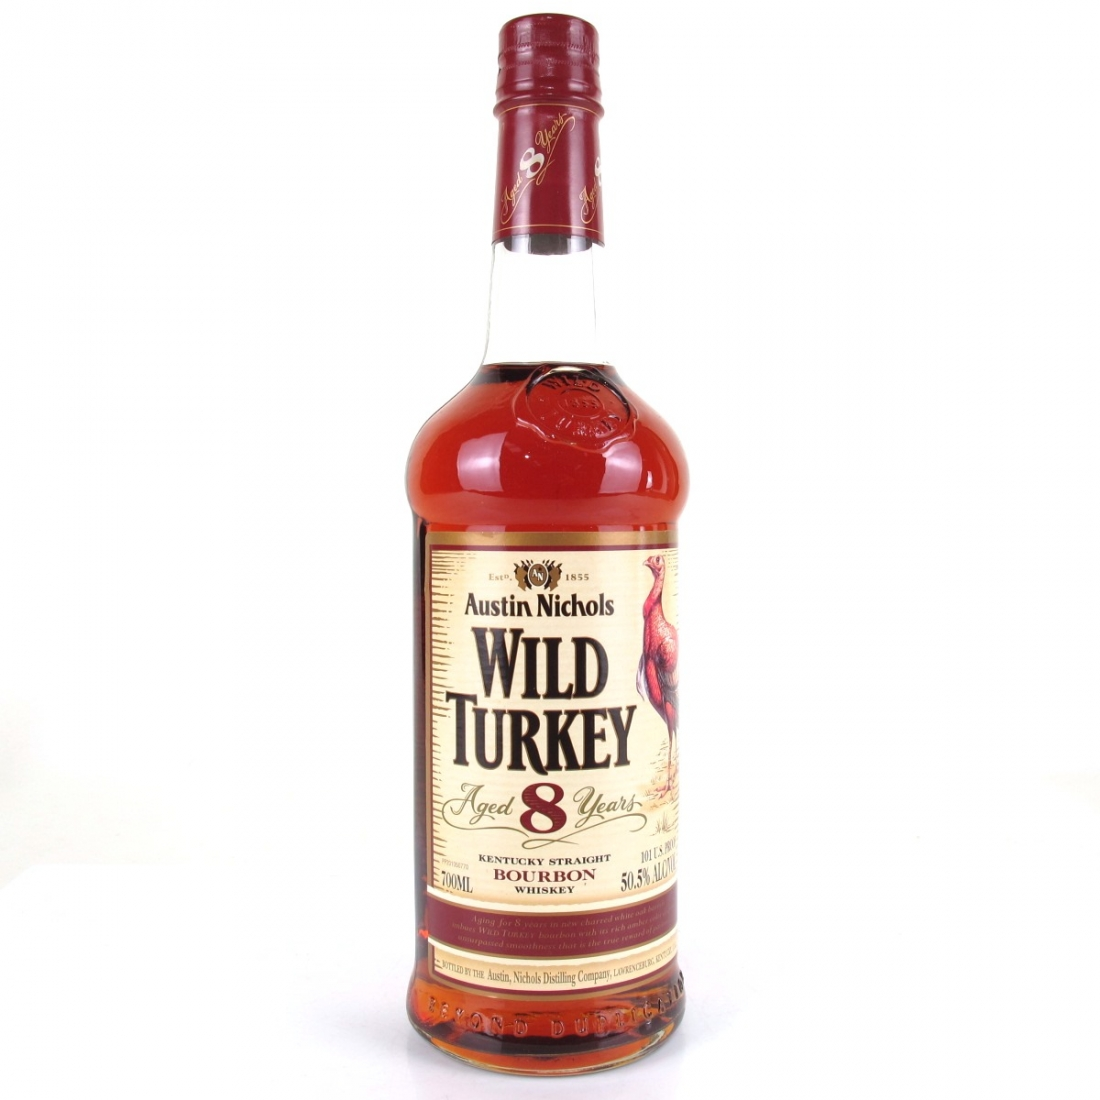 Wild Turkey 8 Year Old 101 Proof